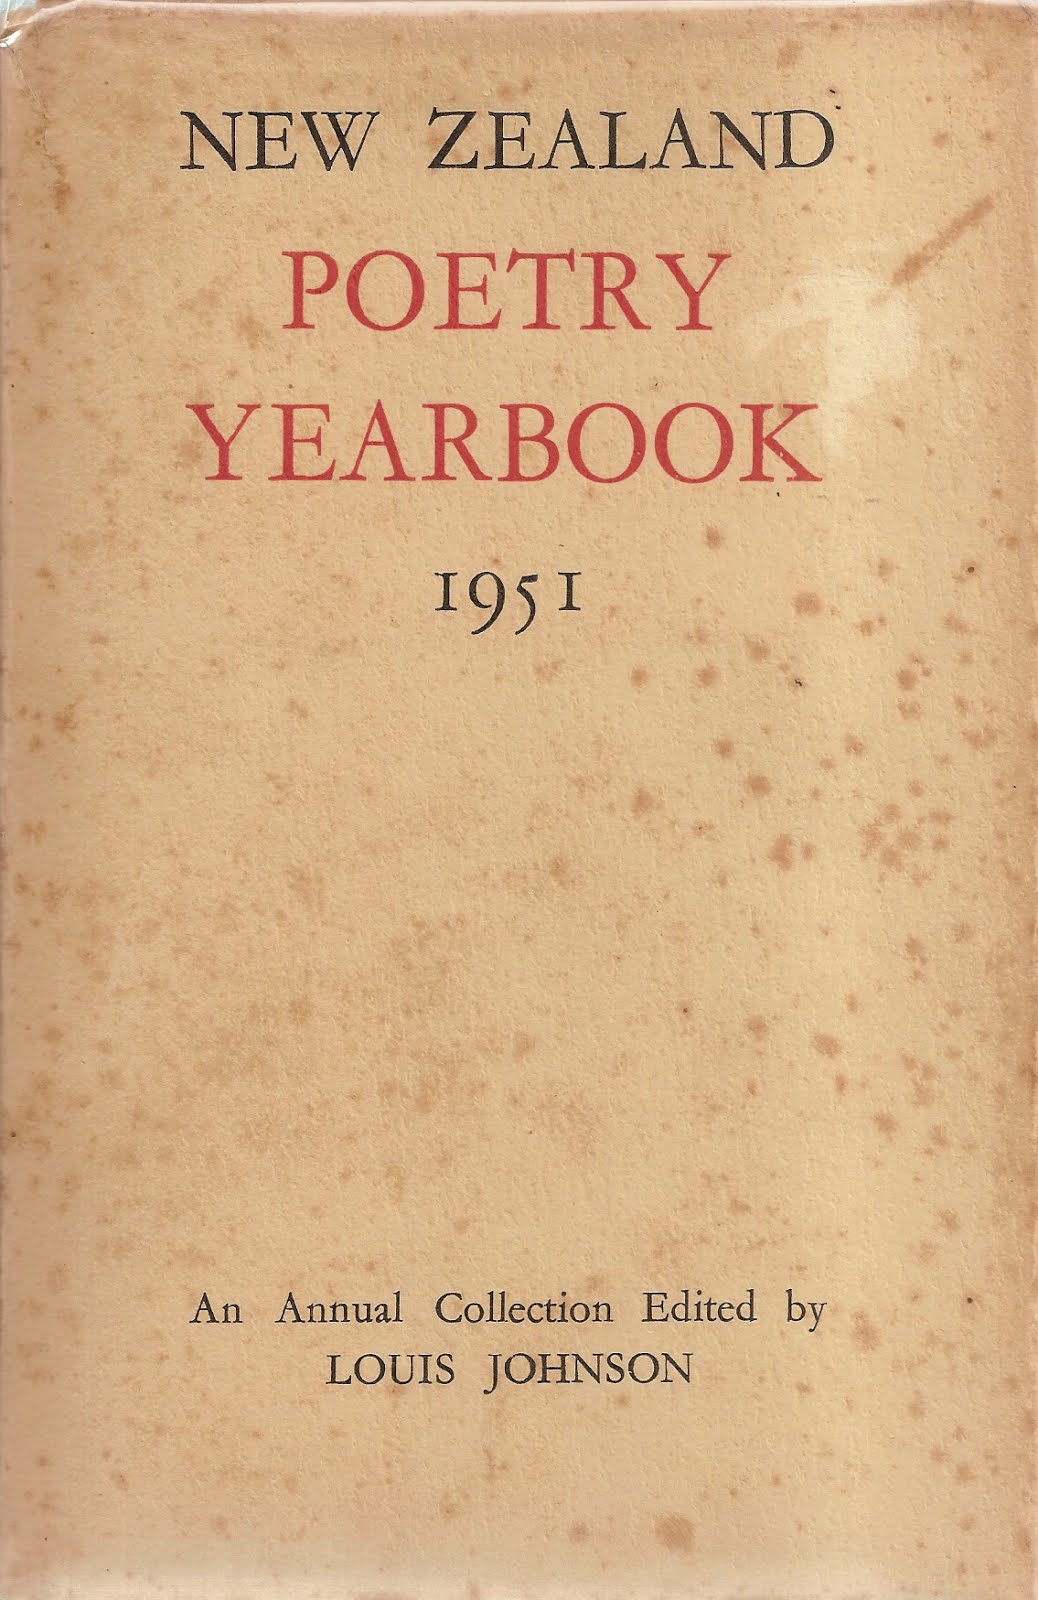 NZ Poetry Yearbook 1 (1951)